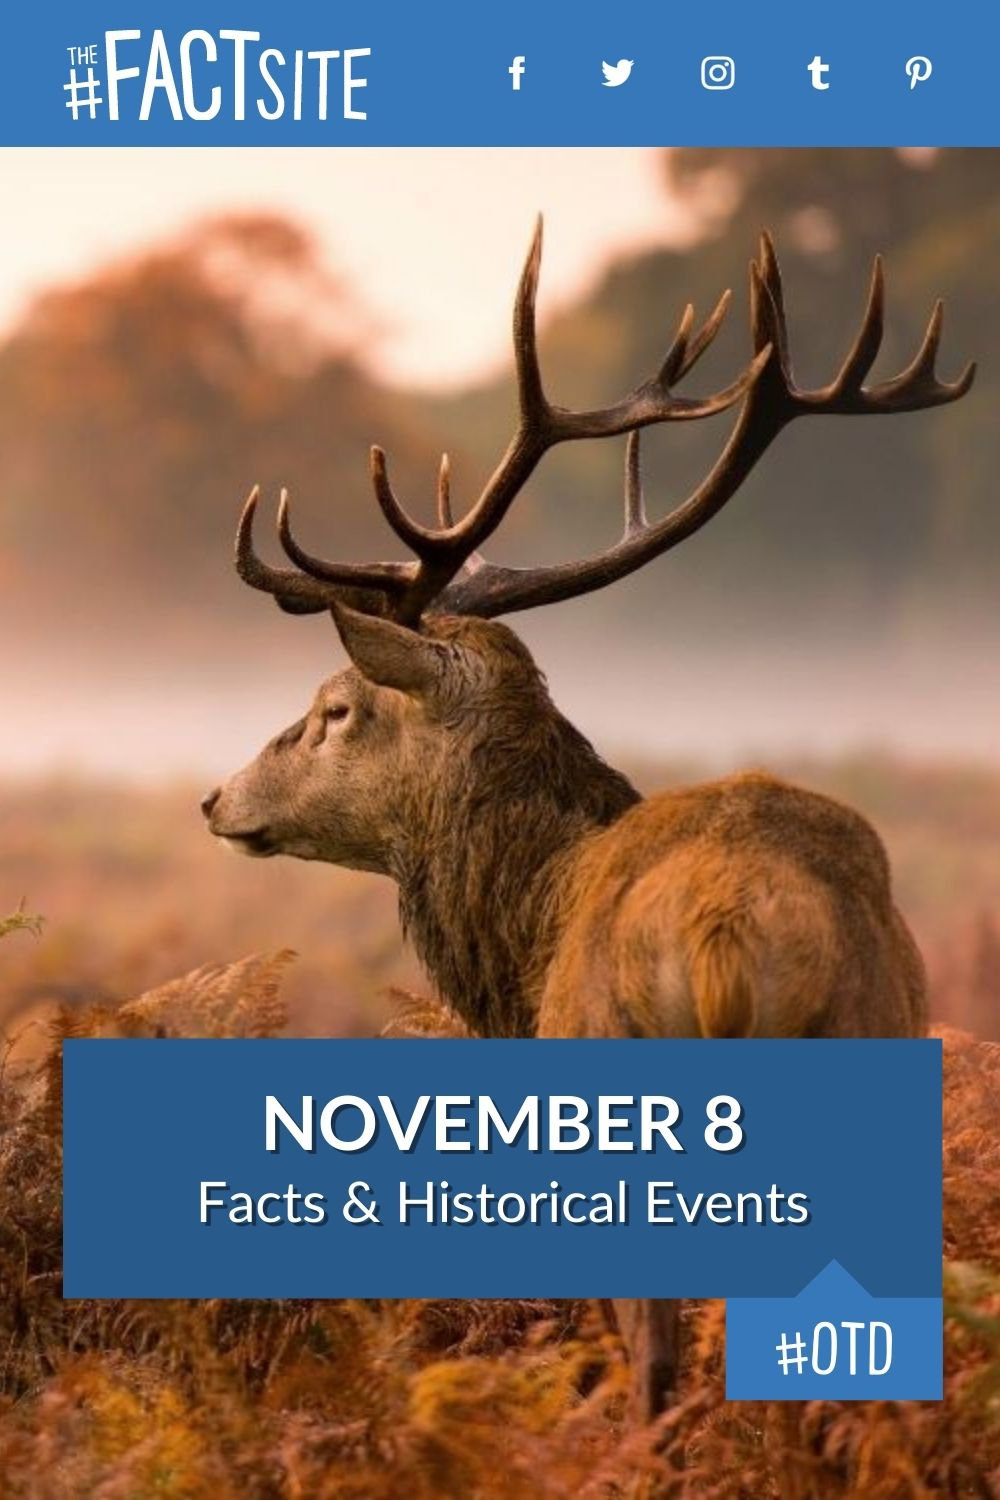 Facts & Historic Events That Happened on November 8